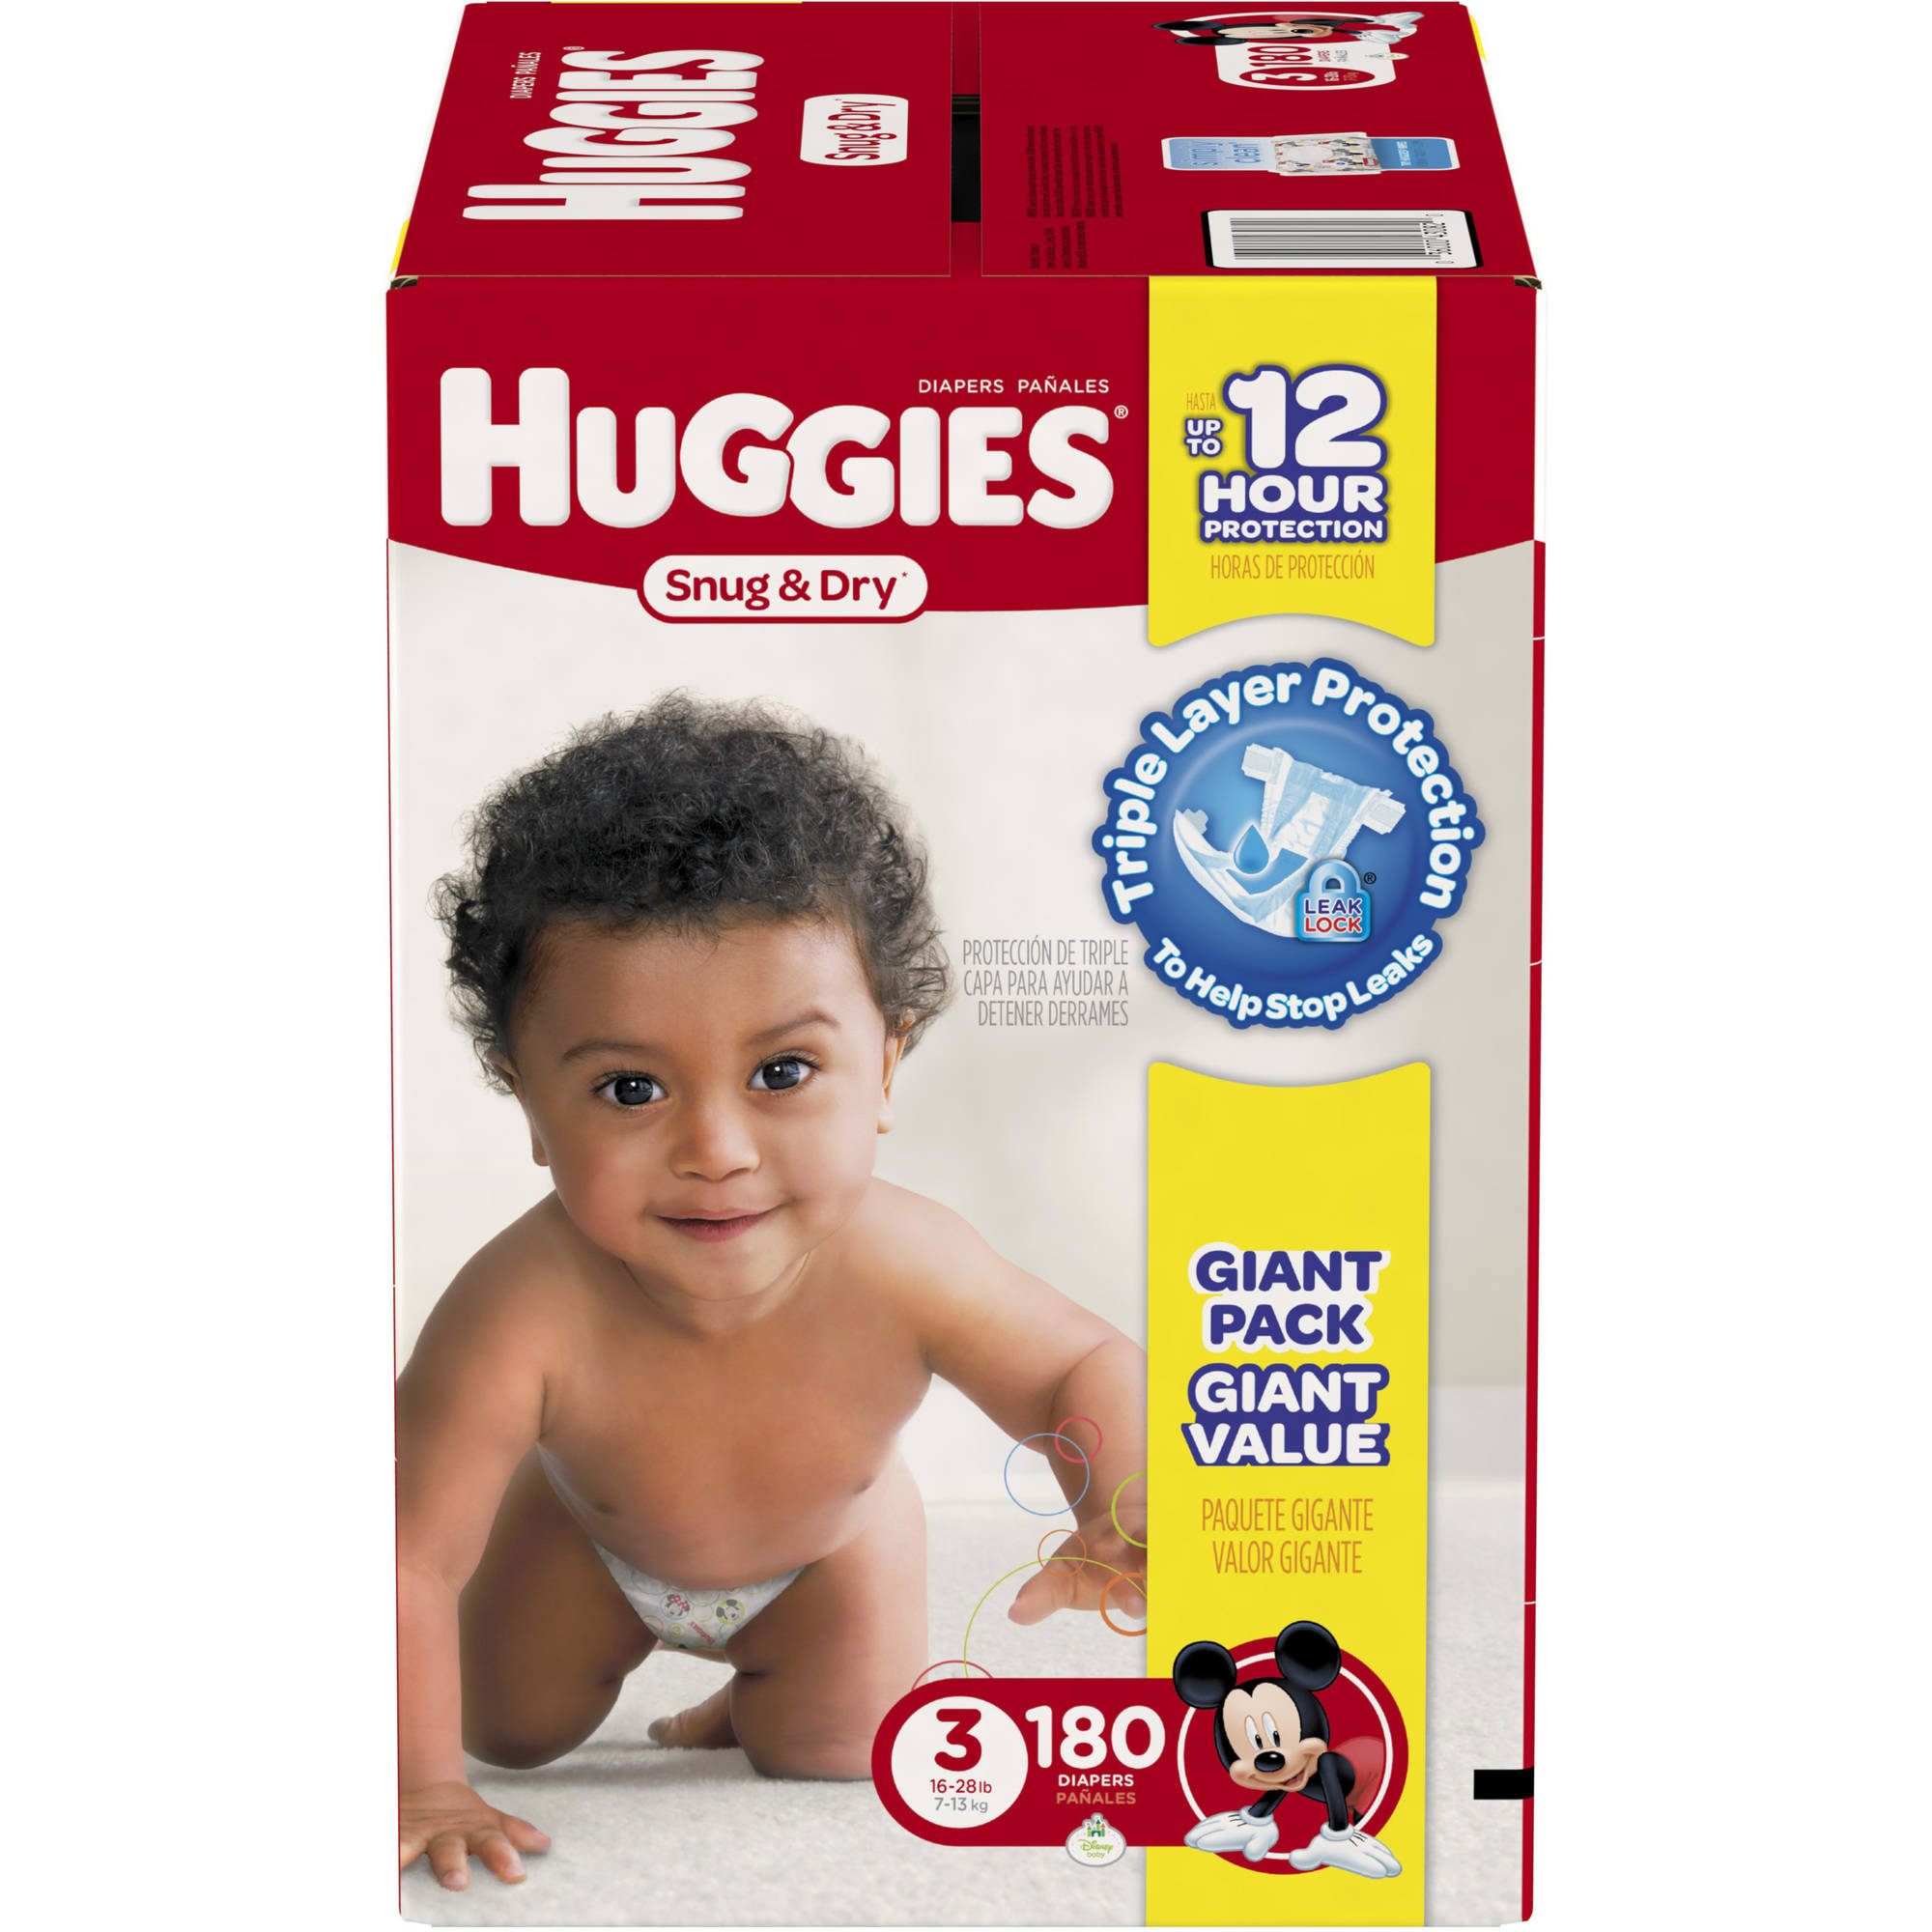 HUGGIES Snug & Dry Diapers, Giant Pack, (Choose Your Size)